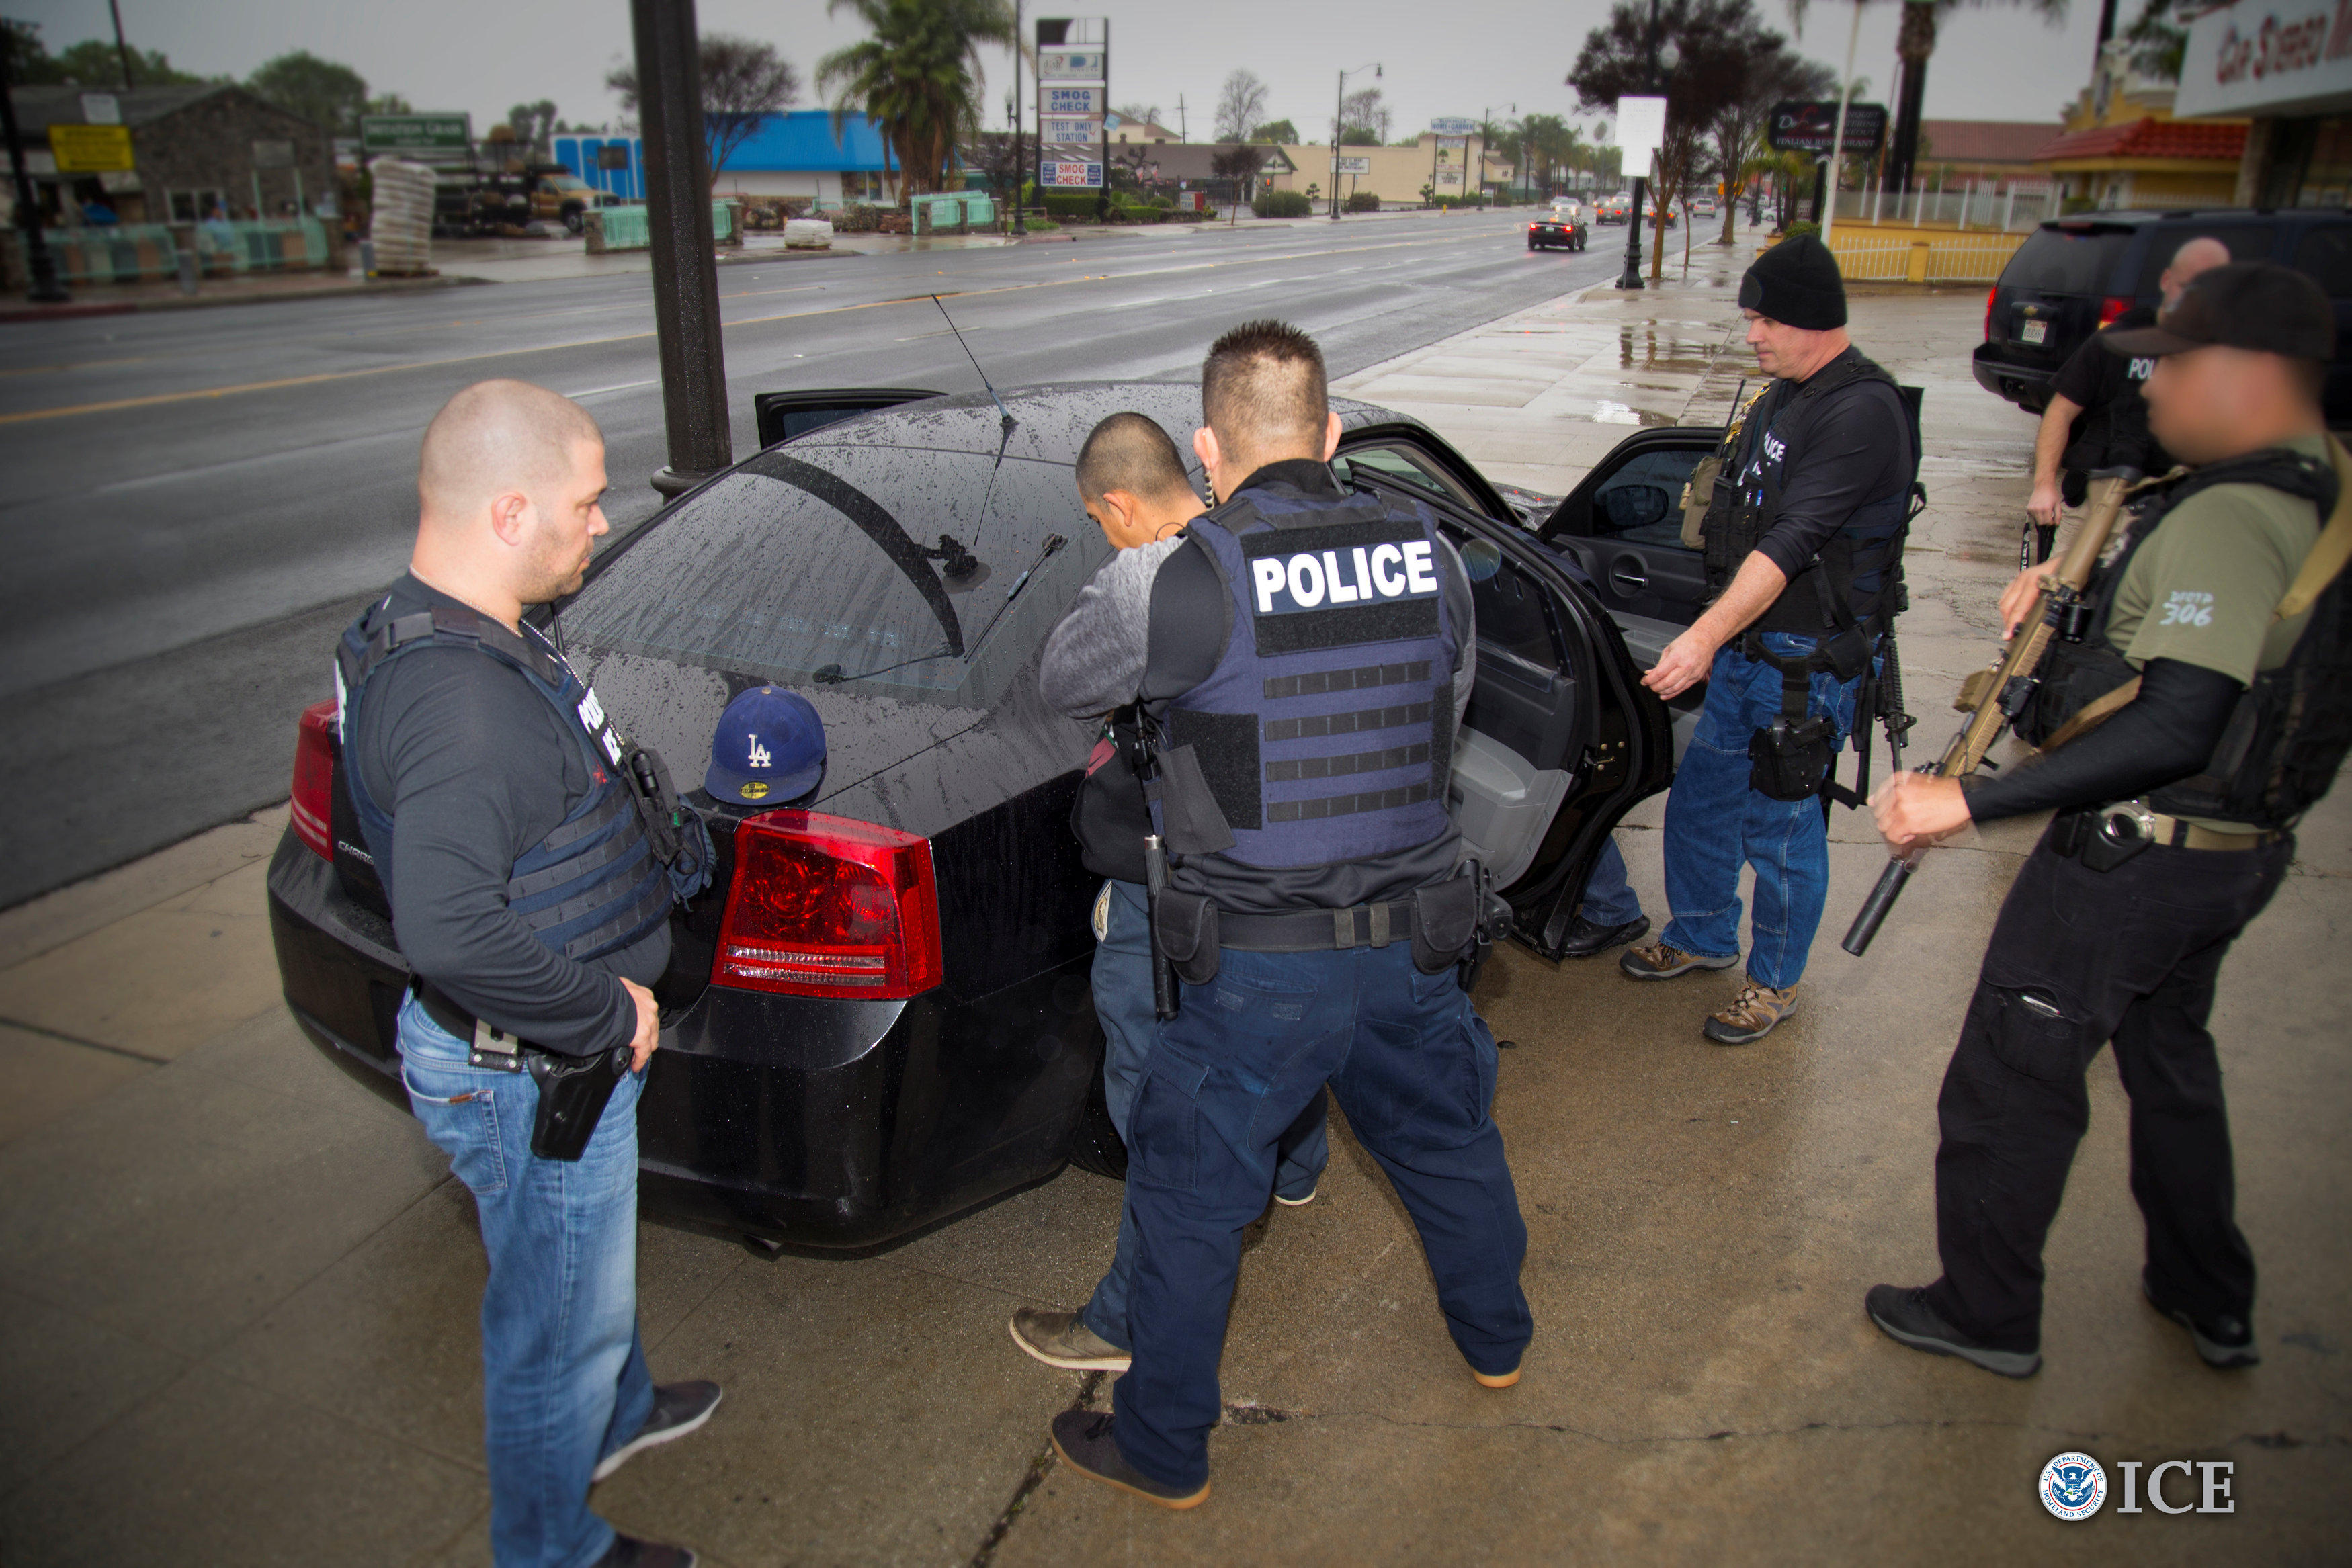 160 people arrested in L A  immigration crackdown, feds say